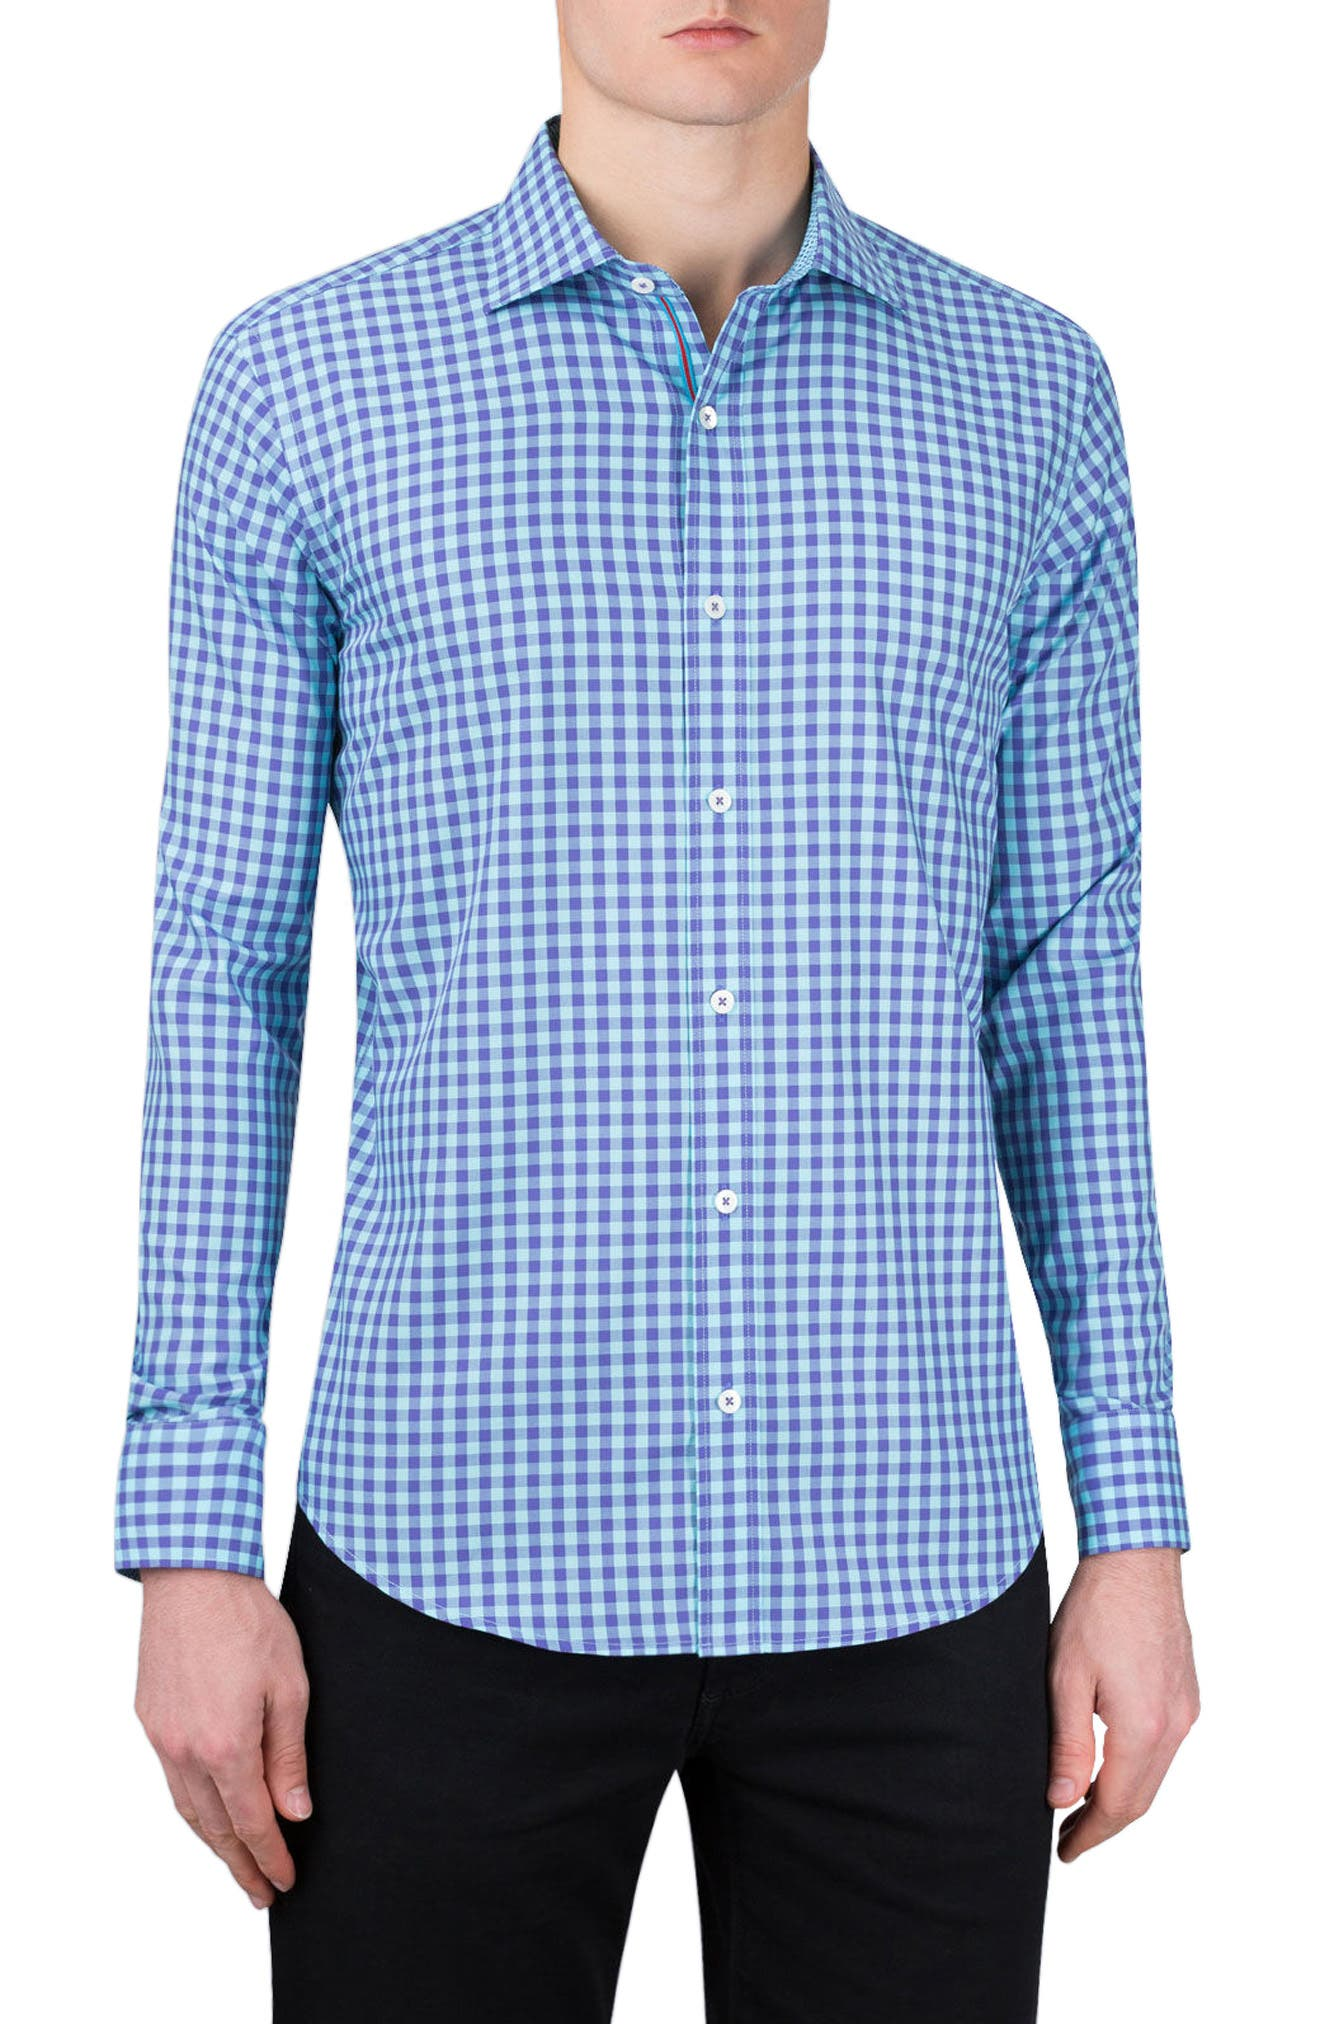 Main Image - Bugatchi Classic Fit Gingham Sport Shirt